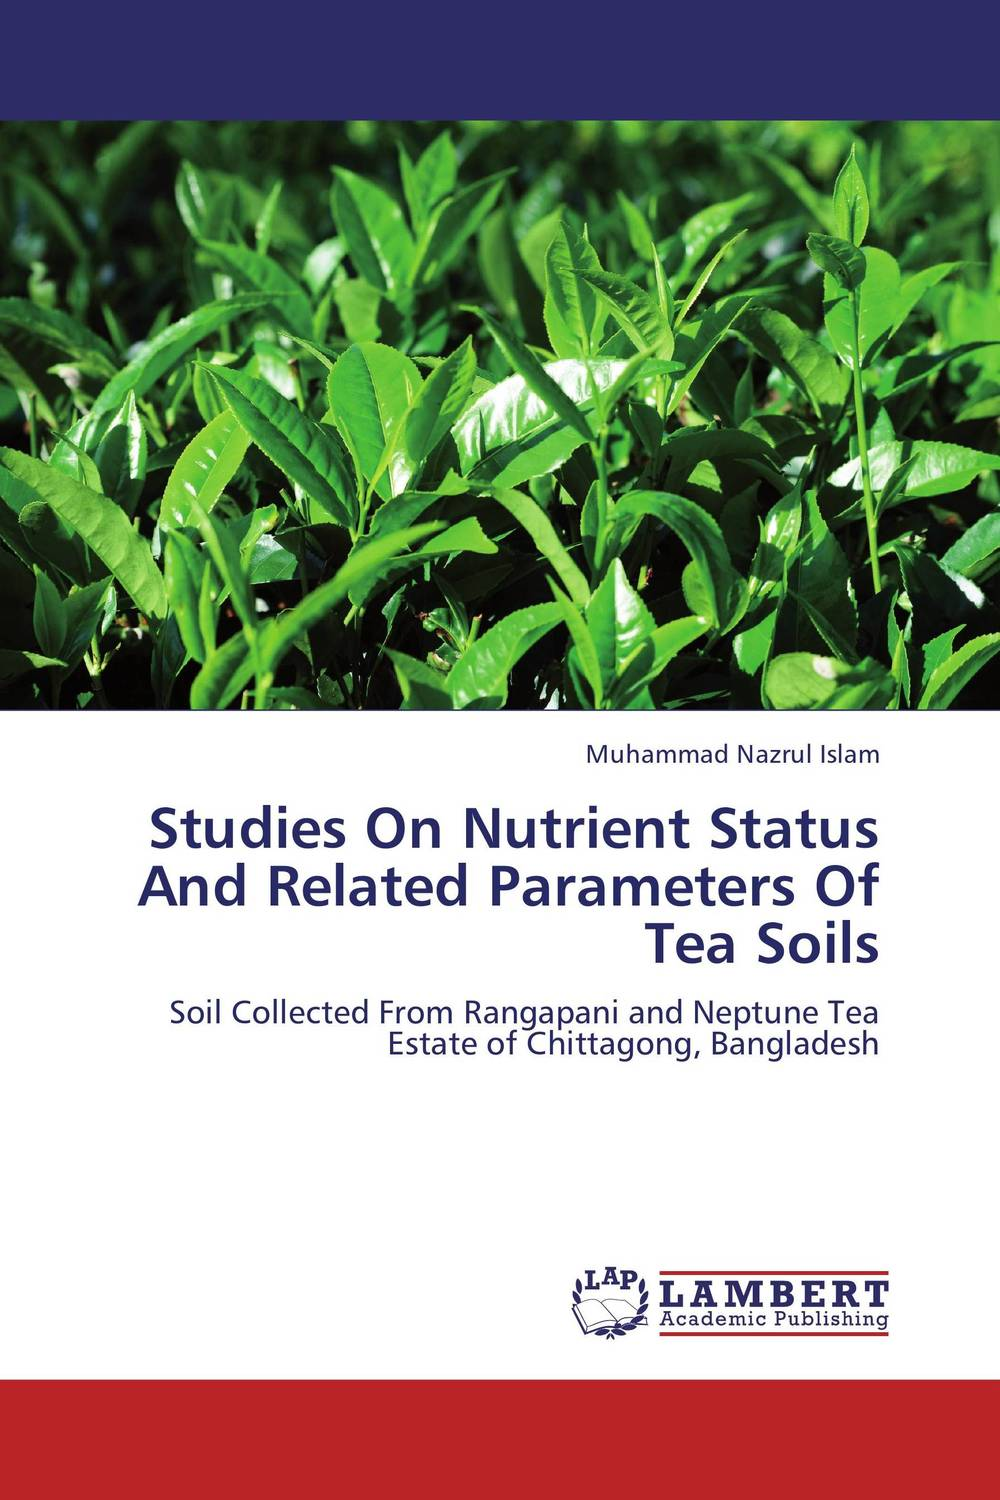 Studies On Nutrient Status And Related Parameters Of Tea Soils купить